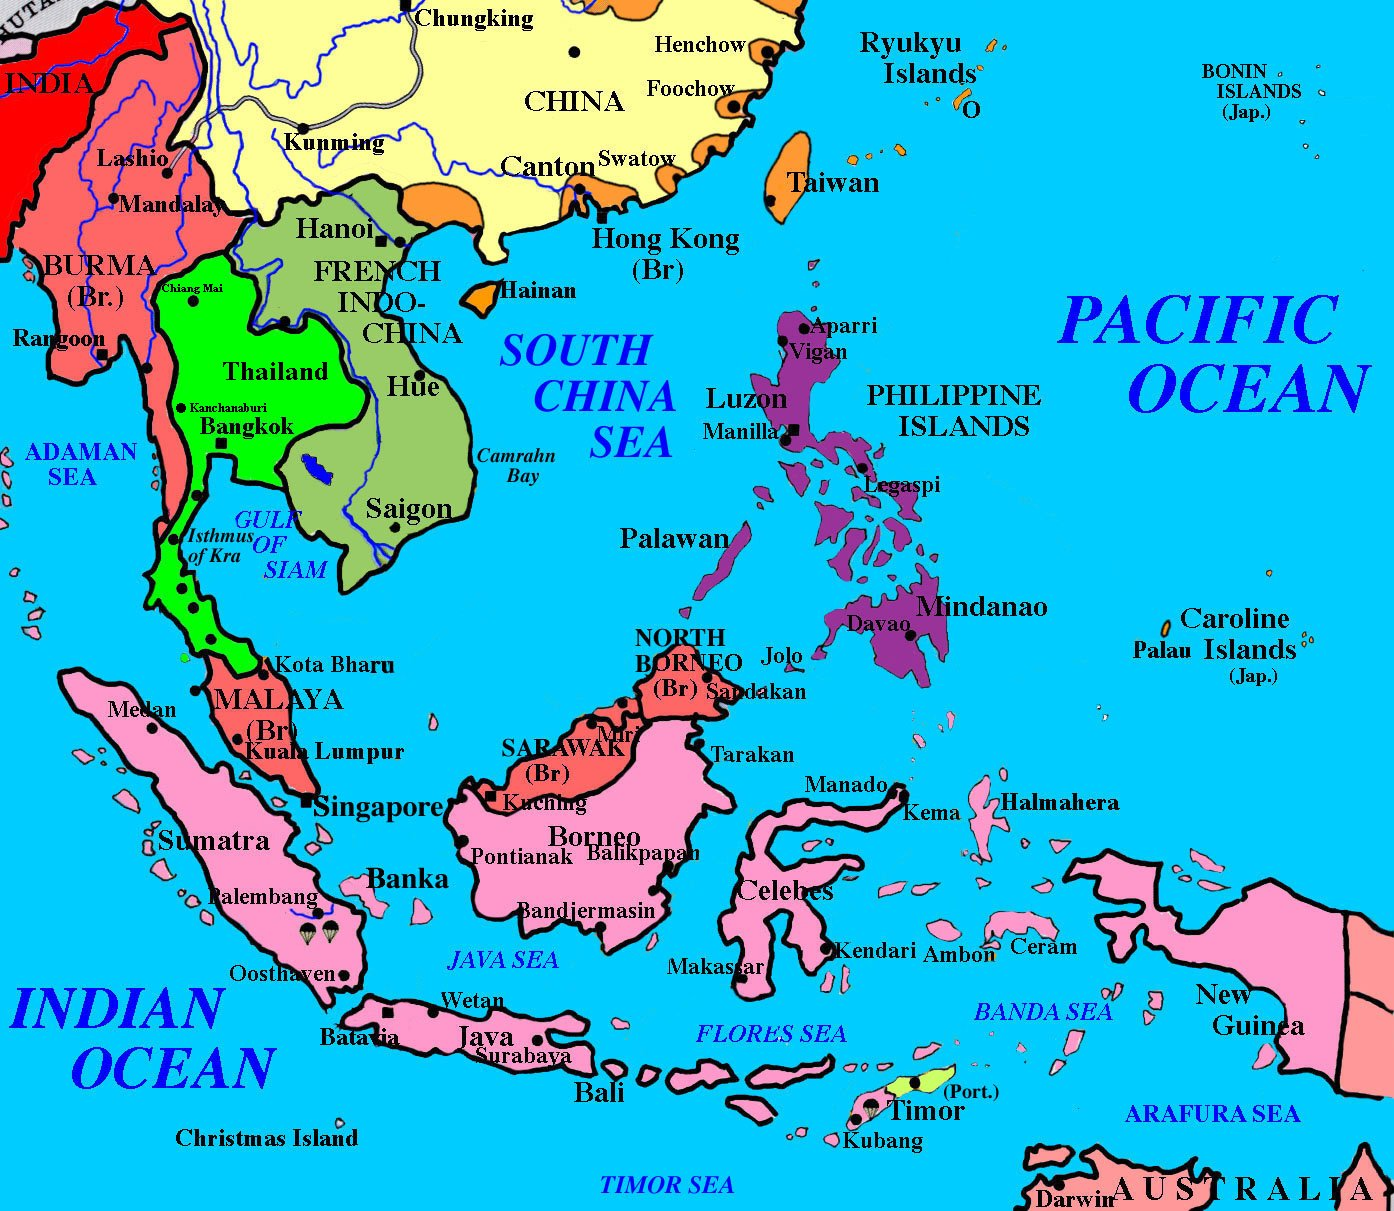 southeast asia is a region without